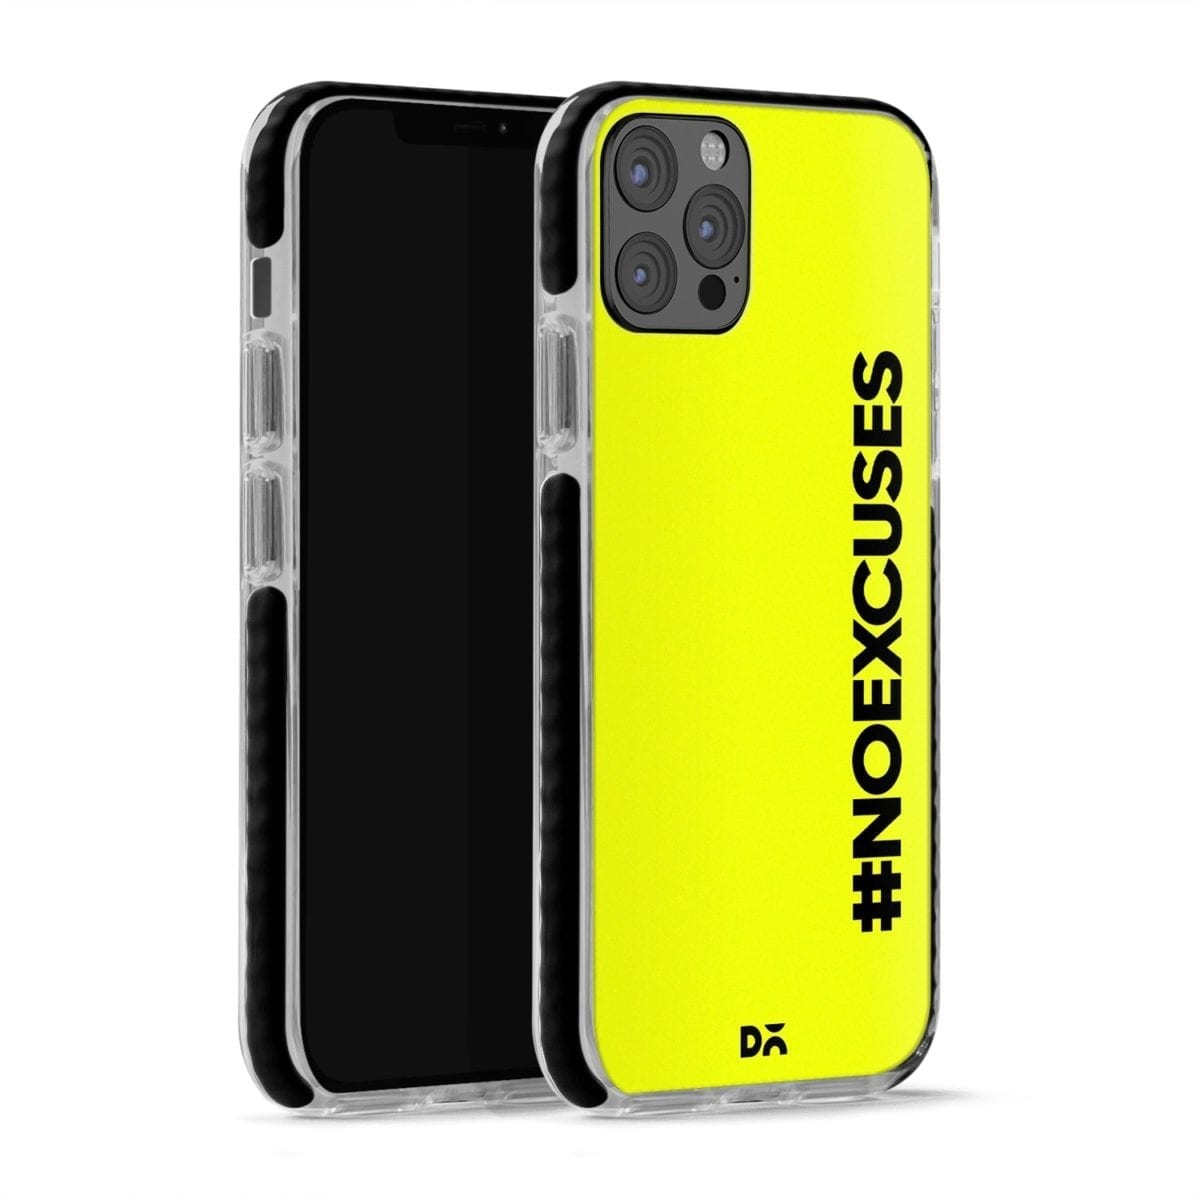 NoExcuses Stride Case Cover for Apple iPhone 12 Pro and Apple iPhone 12 Pro Max with great design and shock proof | Klippik | Online Shopping | Kuwait UAE Saudi